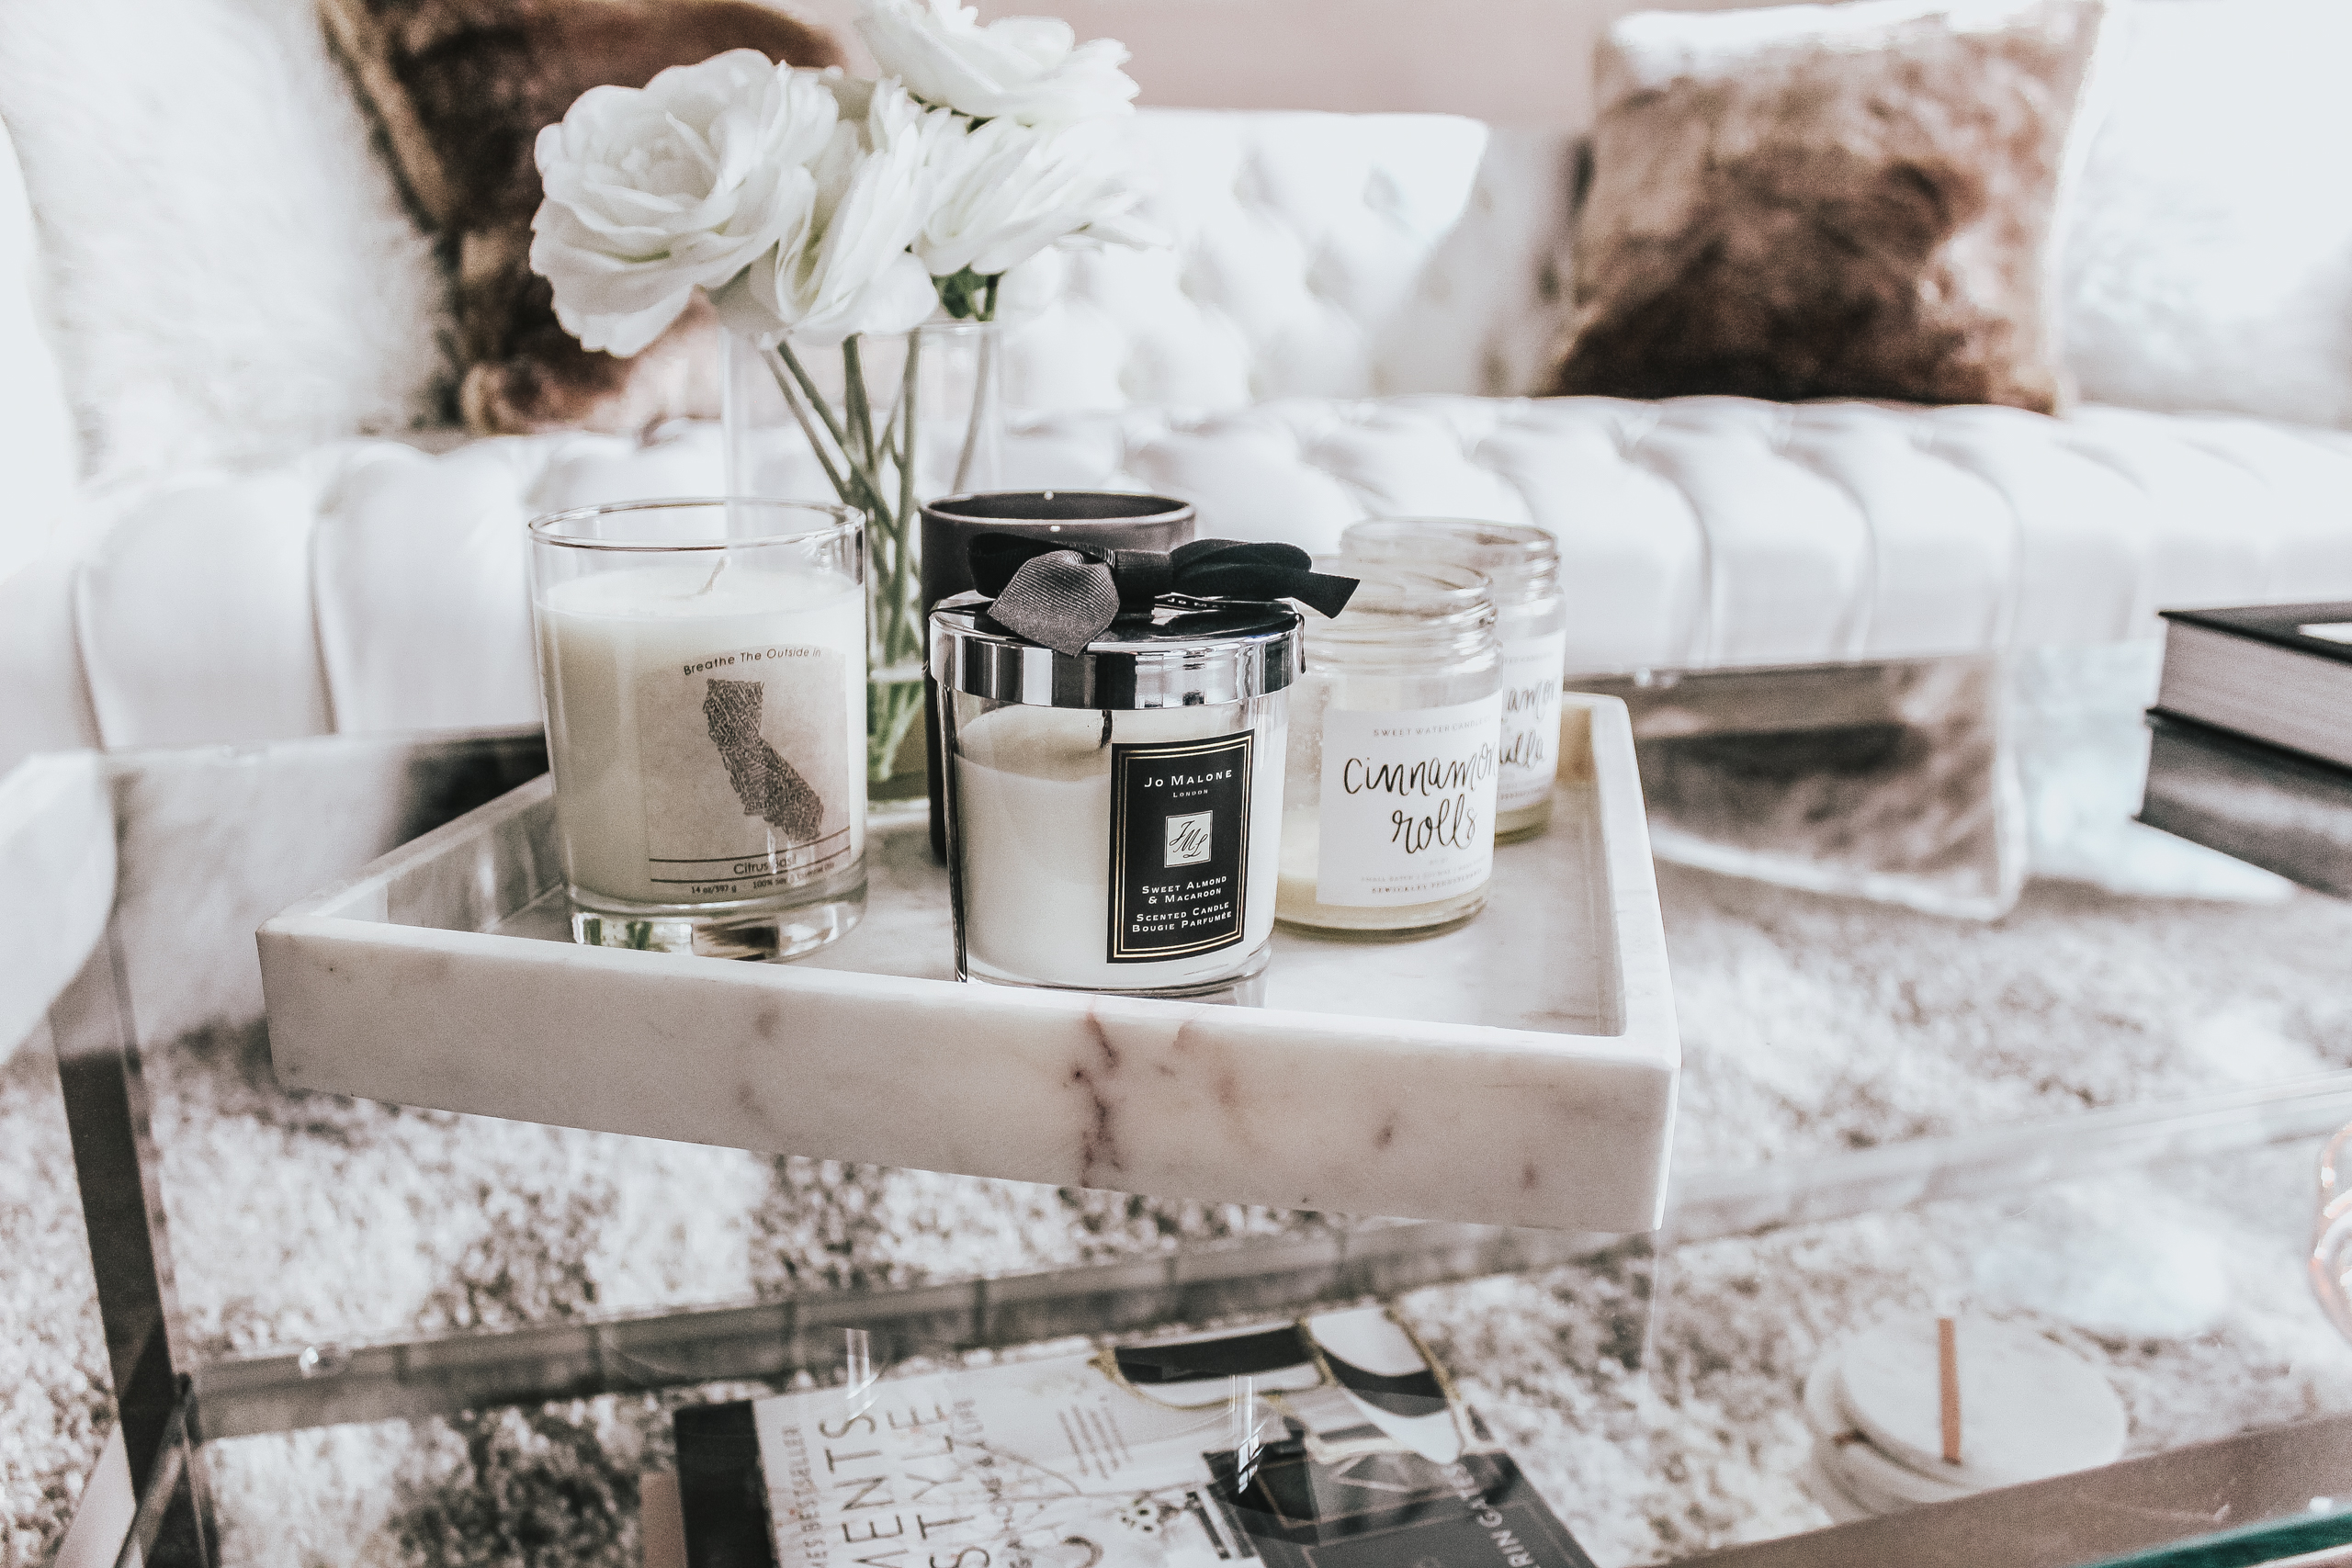 Tom Ford Book Decor Coffee Table Styling